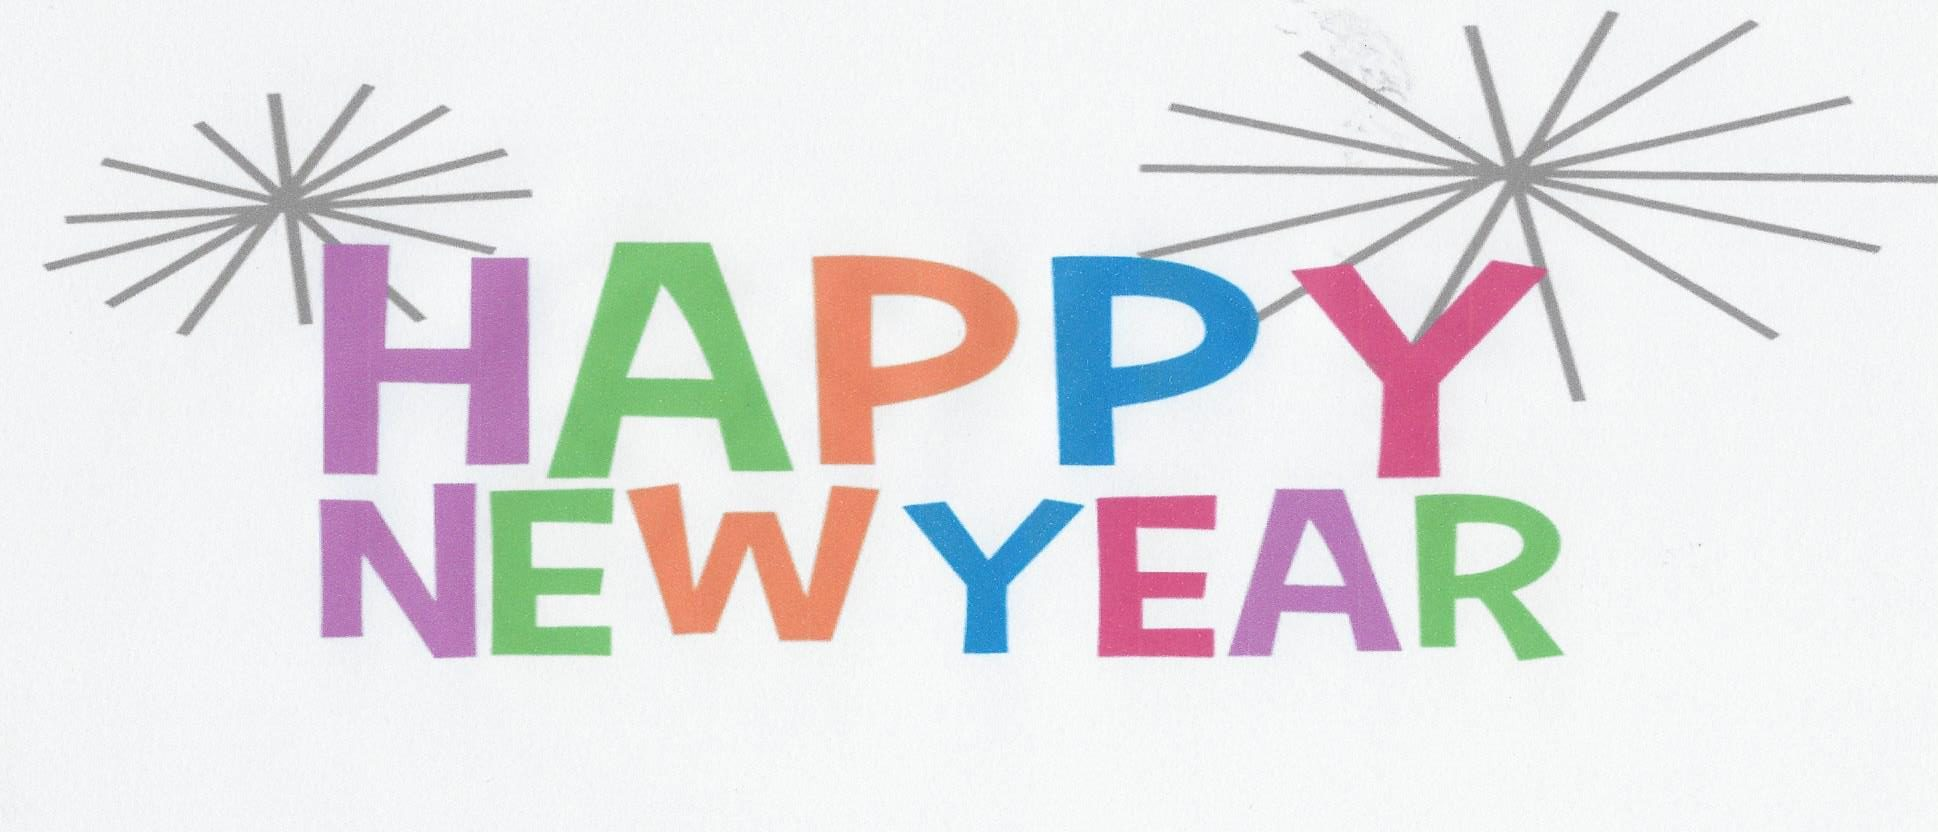 Happy New Year – have a happy healthy 2020!